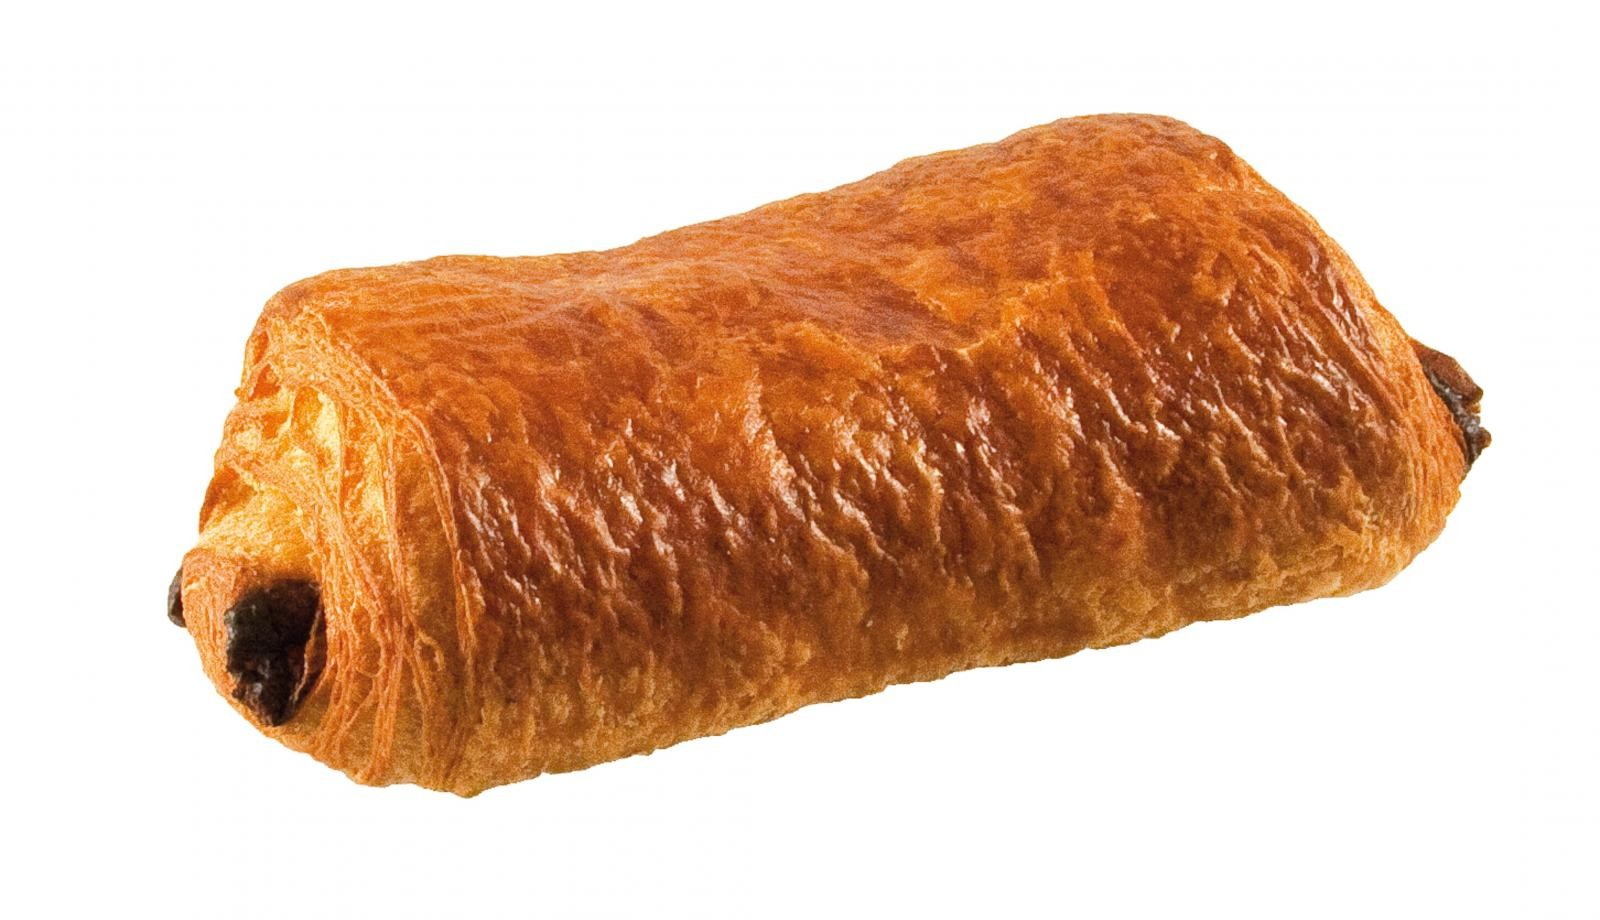 PAIN CHOCOLAT MAXI 150G CT84 BRIDOR